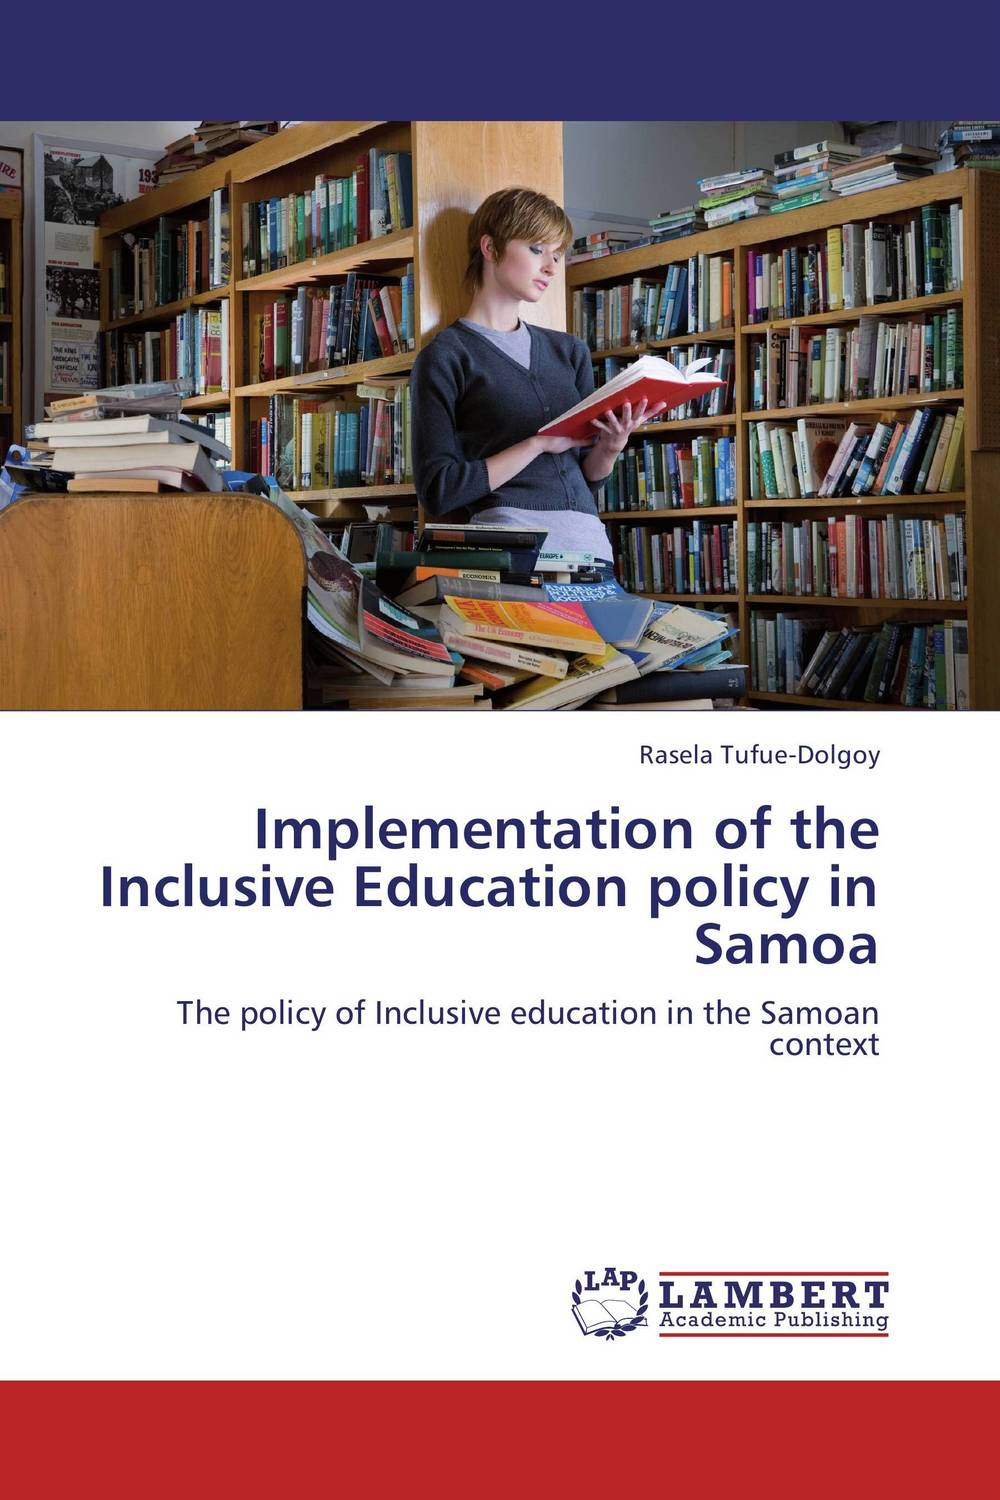 Implementation of the Inclusive Education policy in Samoa